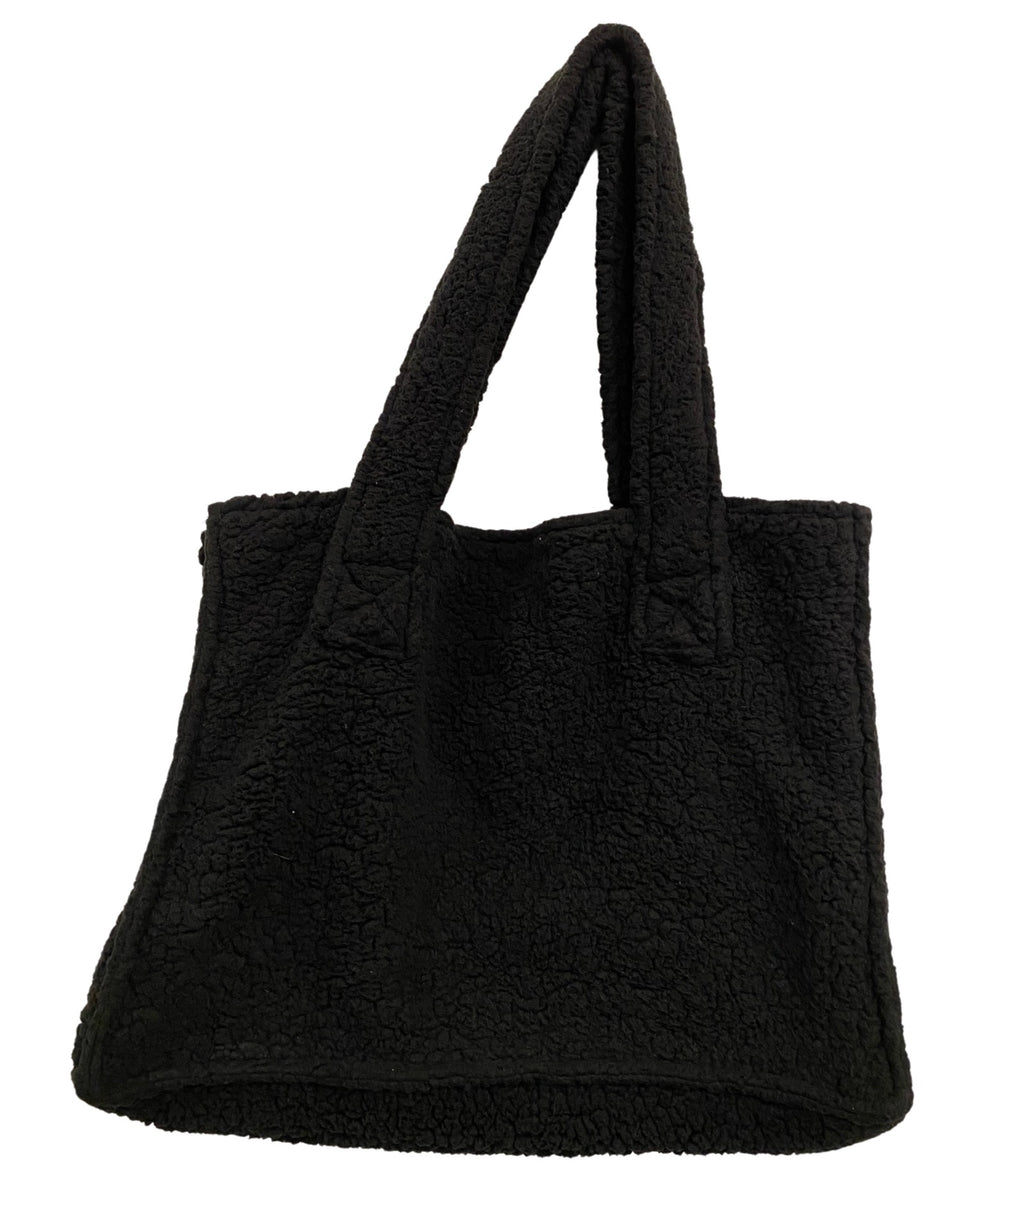 mac&vic Black Sherpa Faux Fur Tote Deconstructed